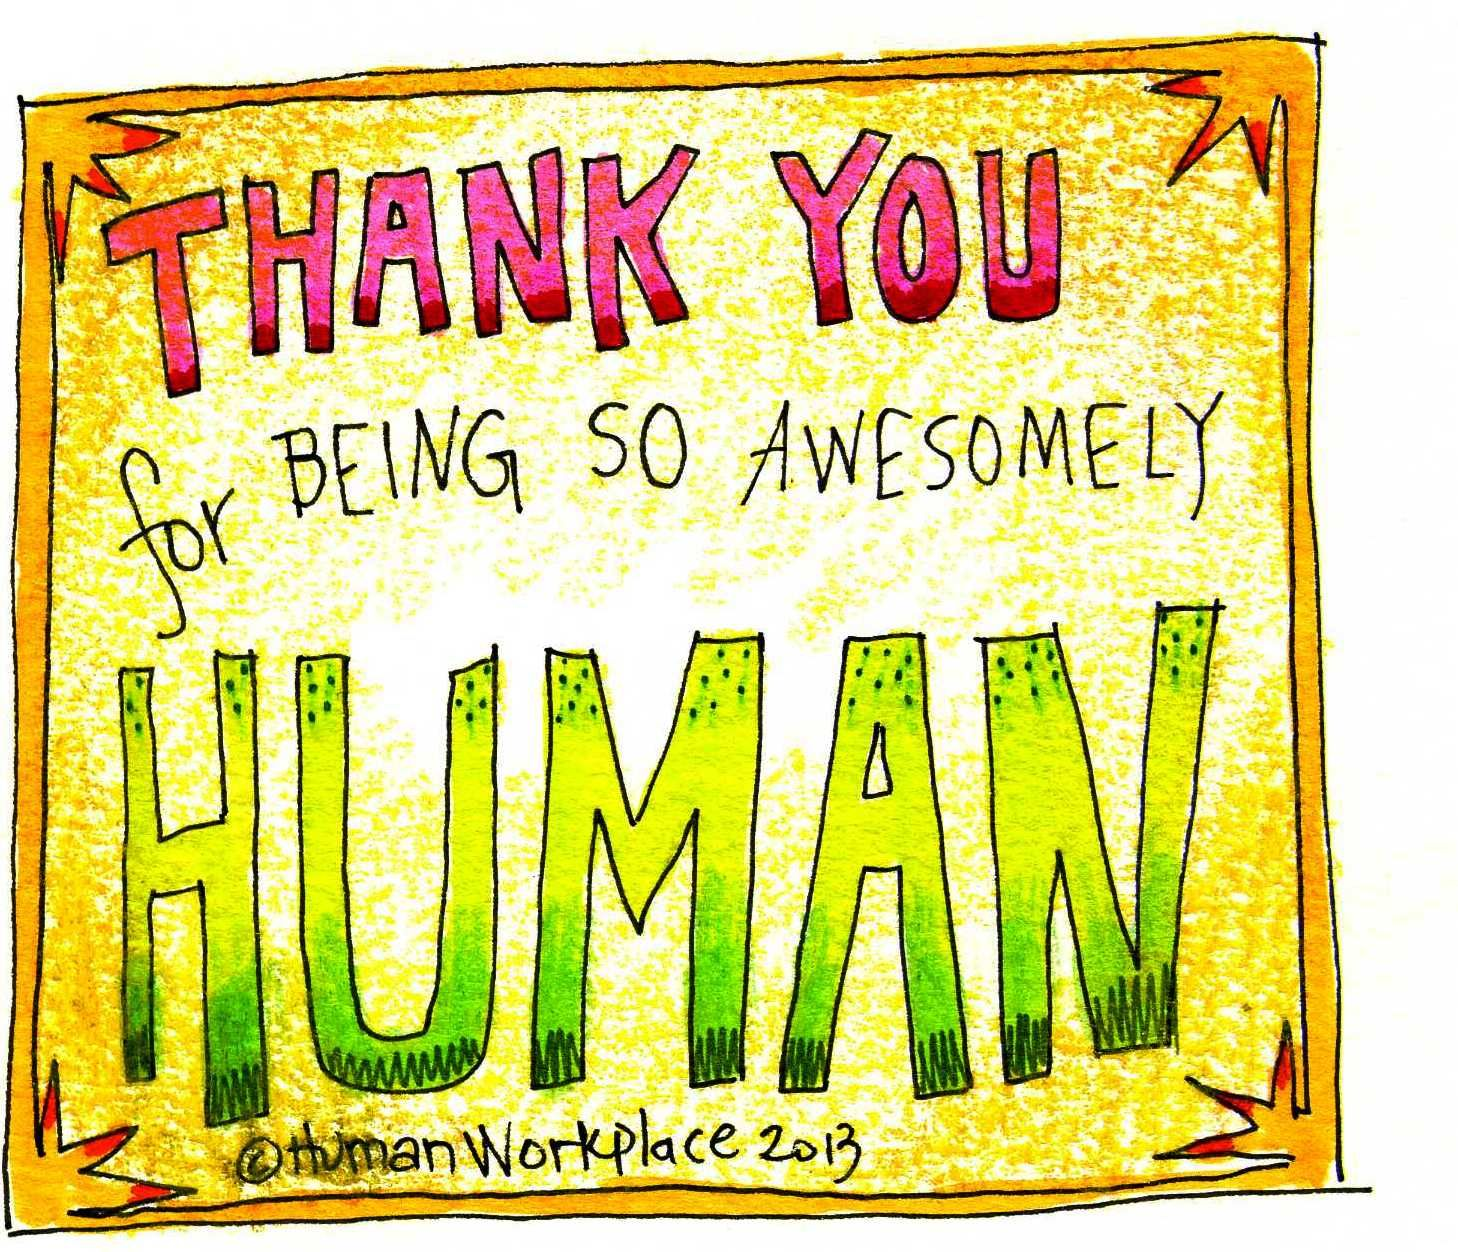 Thank You For Being So Awesomely Human Badge By Liz Ryan From Human Work  Place